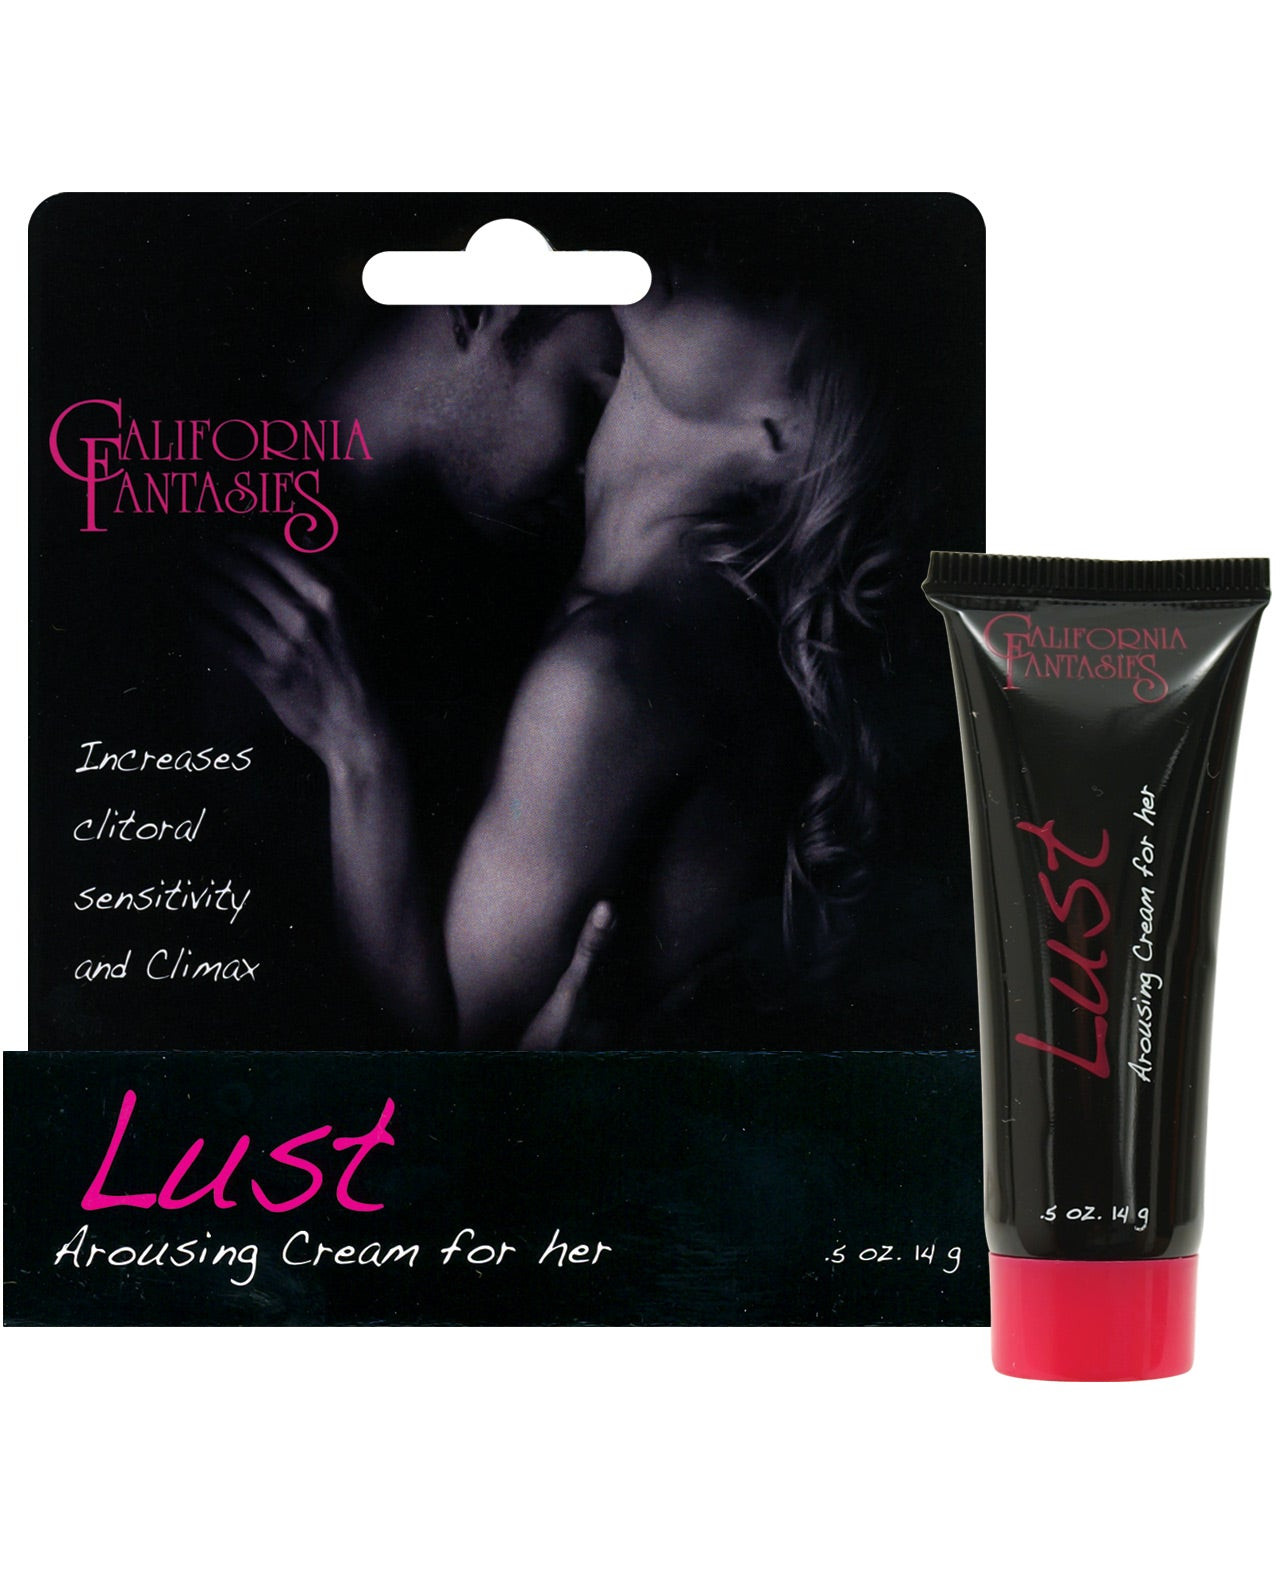 Lust Arousing Cream for Her - .5 oz Tube